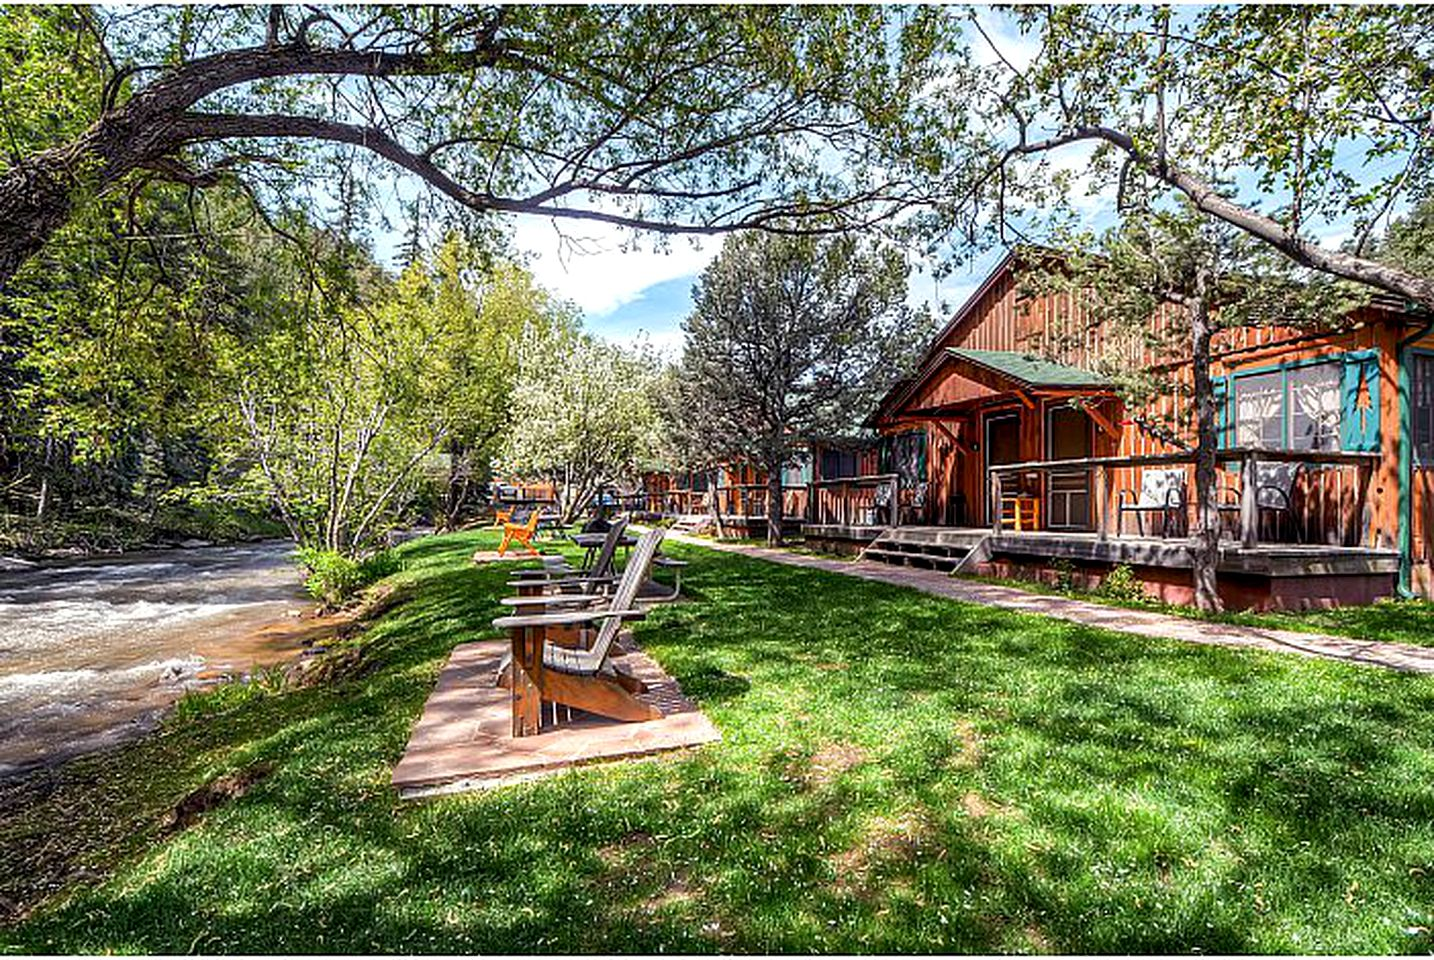 Cabins in Evergreen, CO with green grass overlooking a creek.